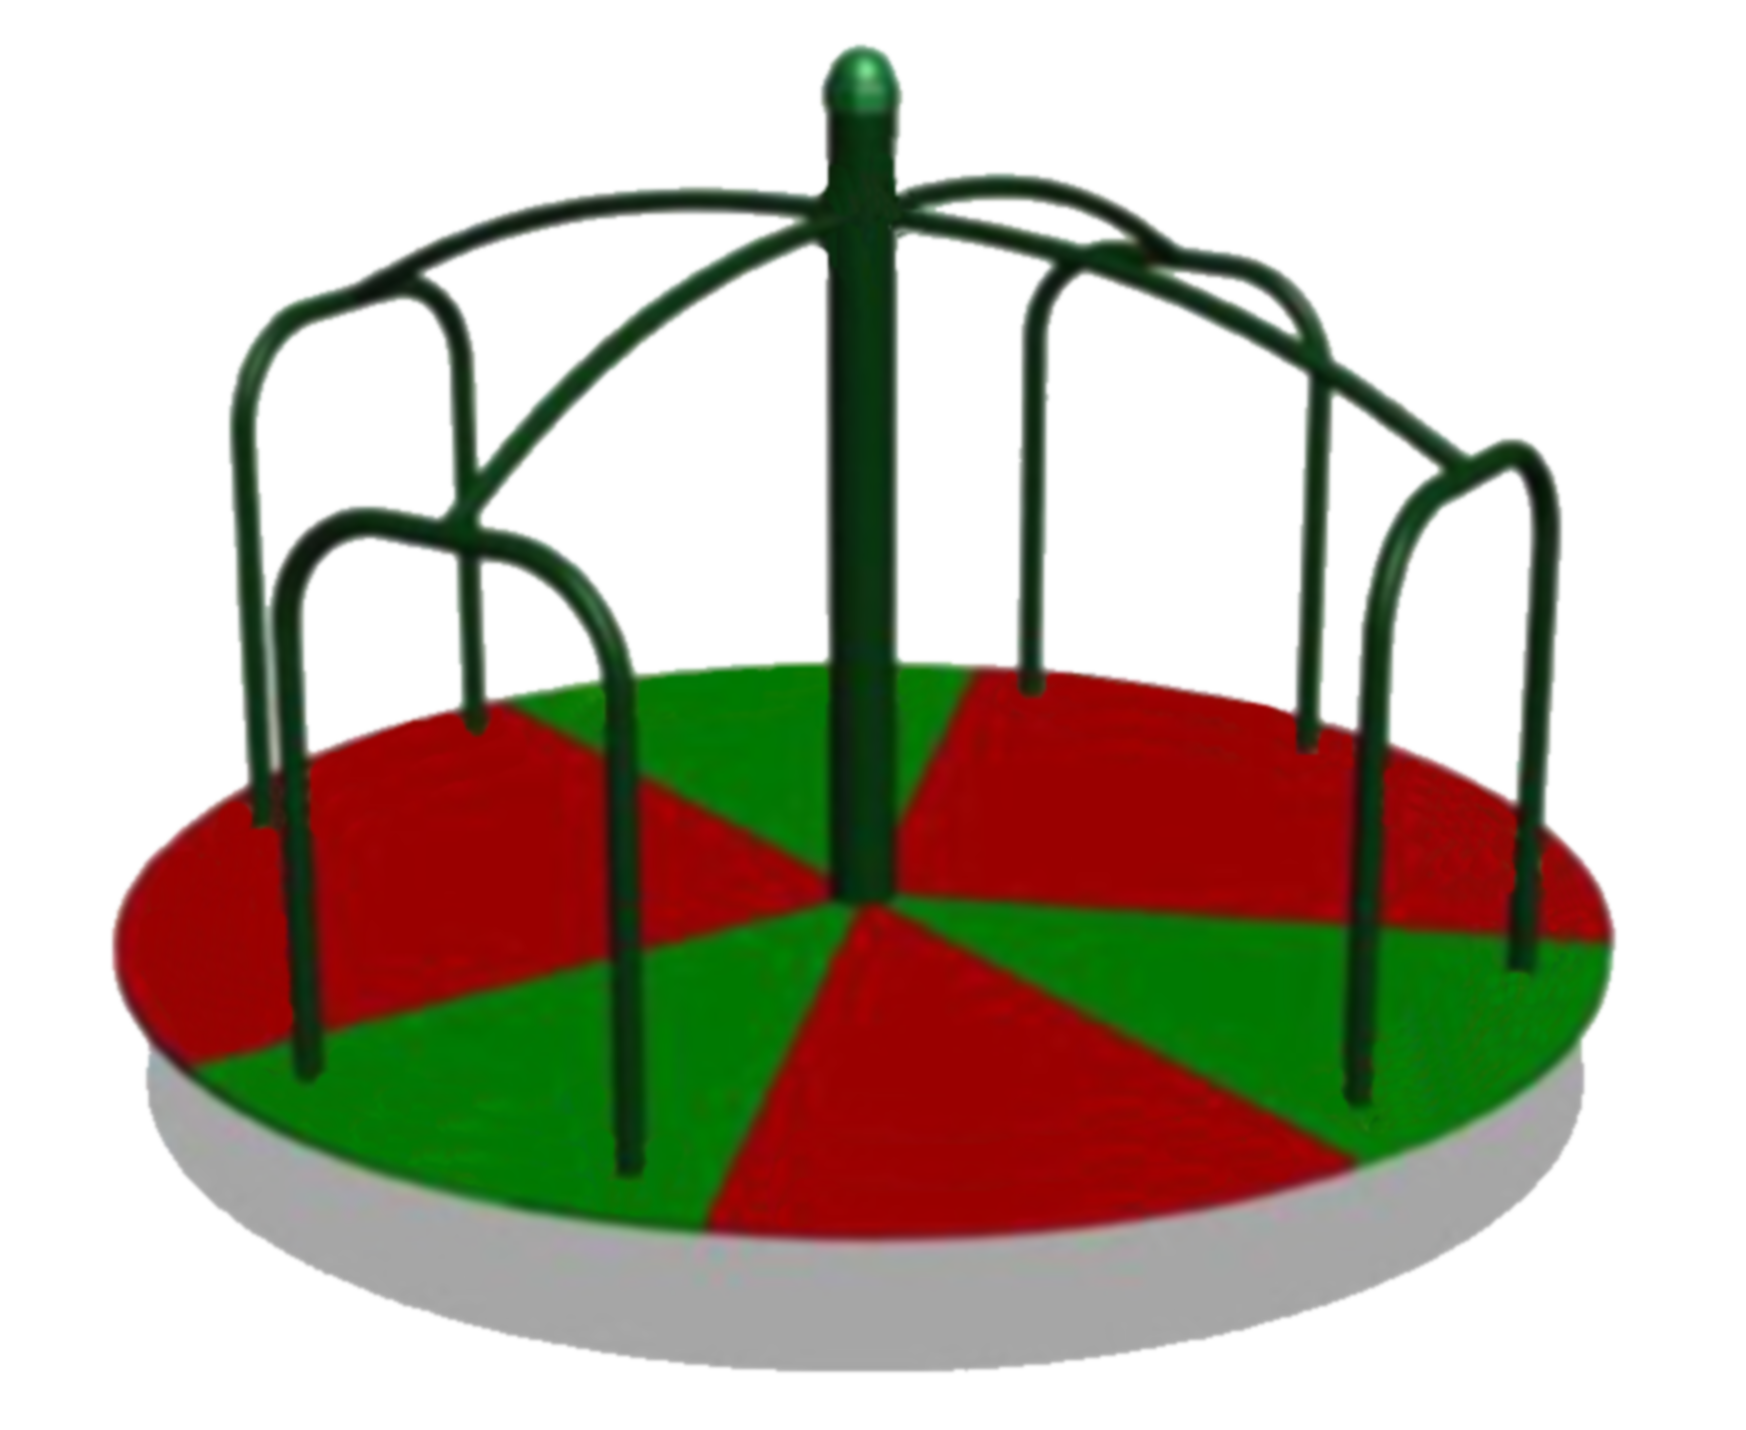 Kids On Playground Clipart Black And White Free